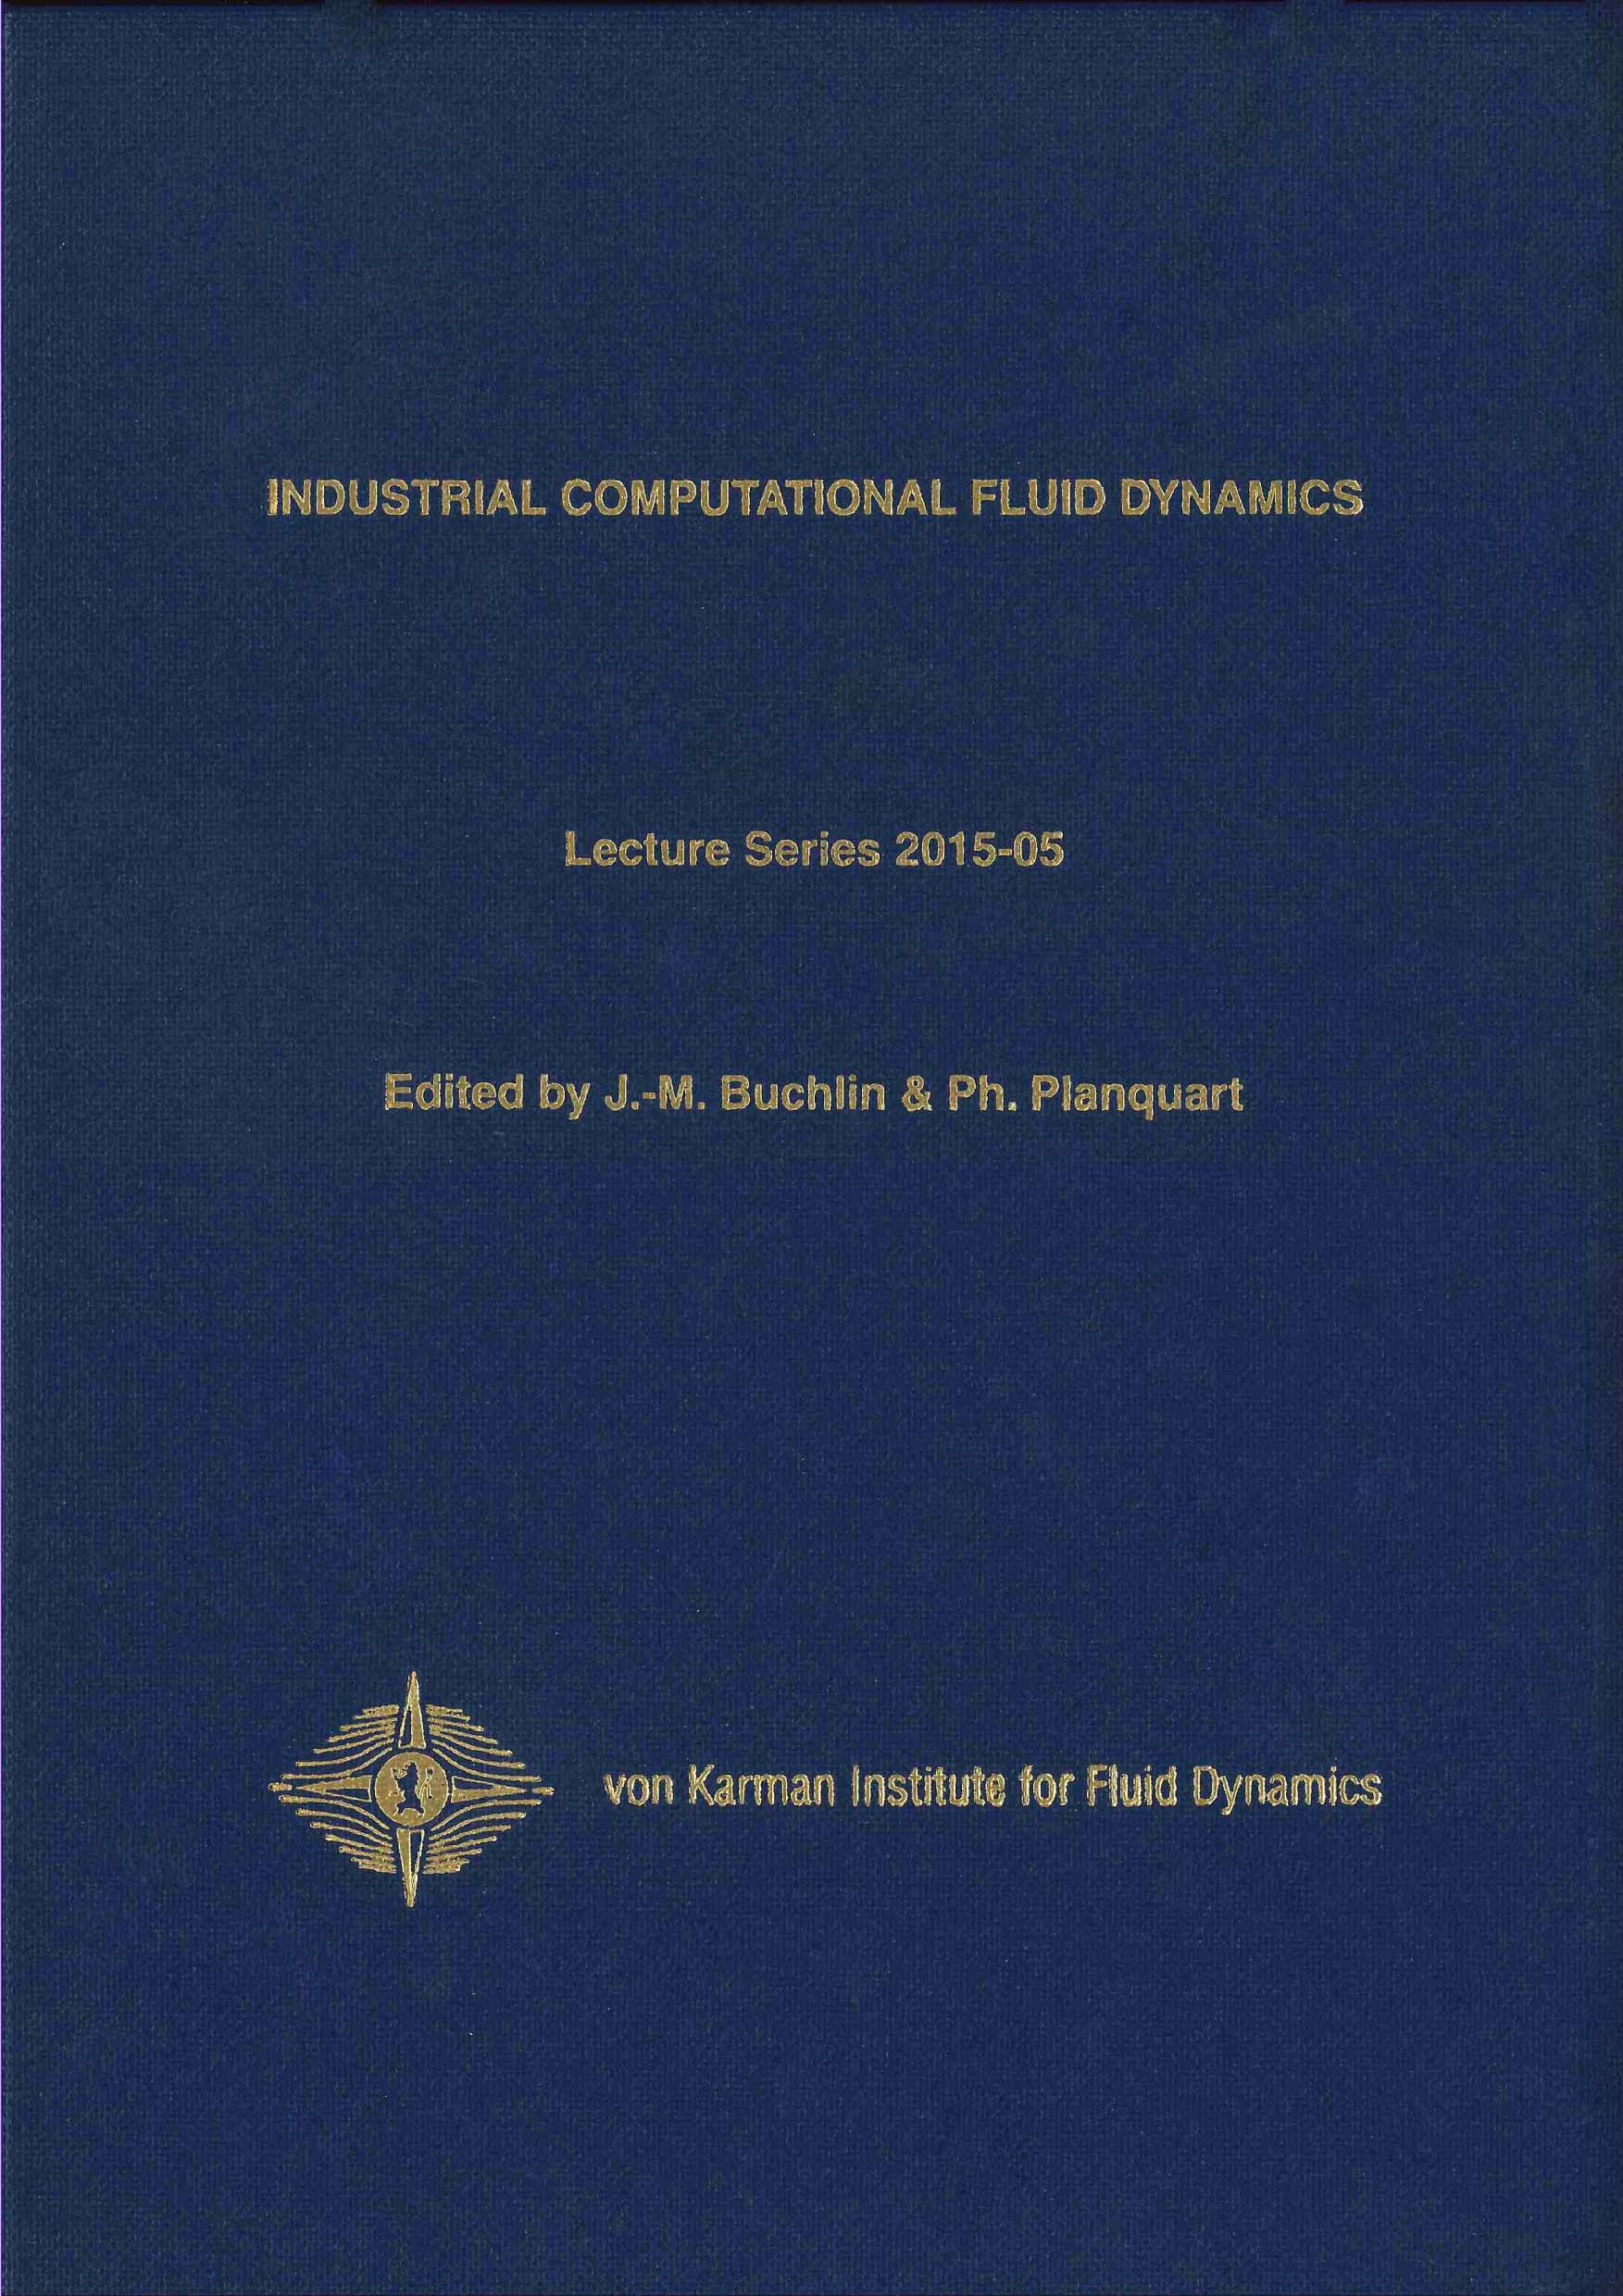 Industrial computational fluid dynamics - VKI LS 2015-05